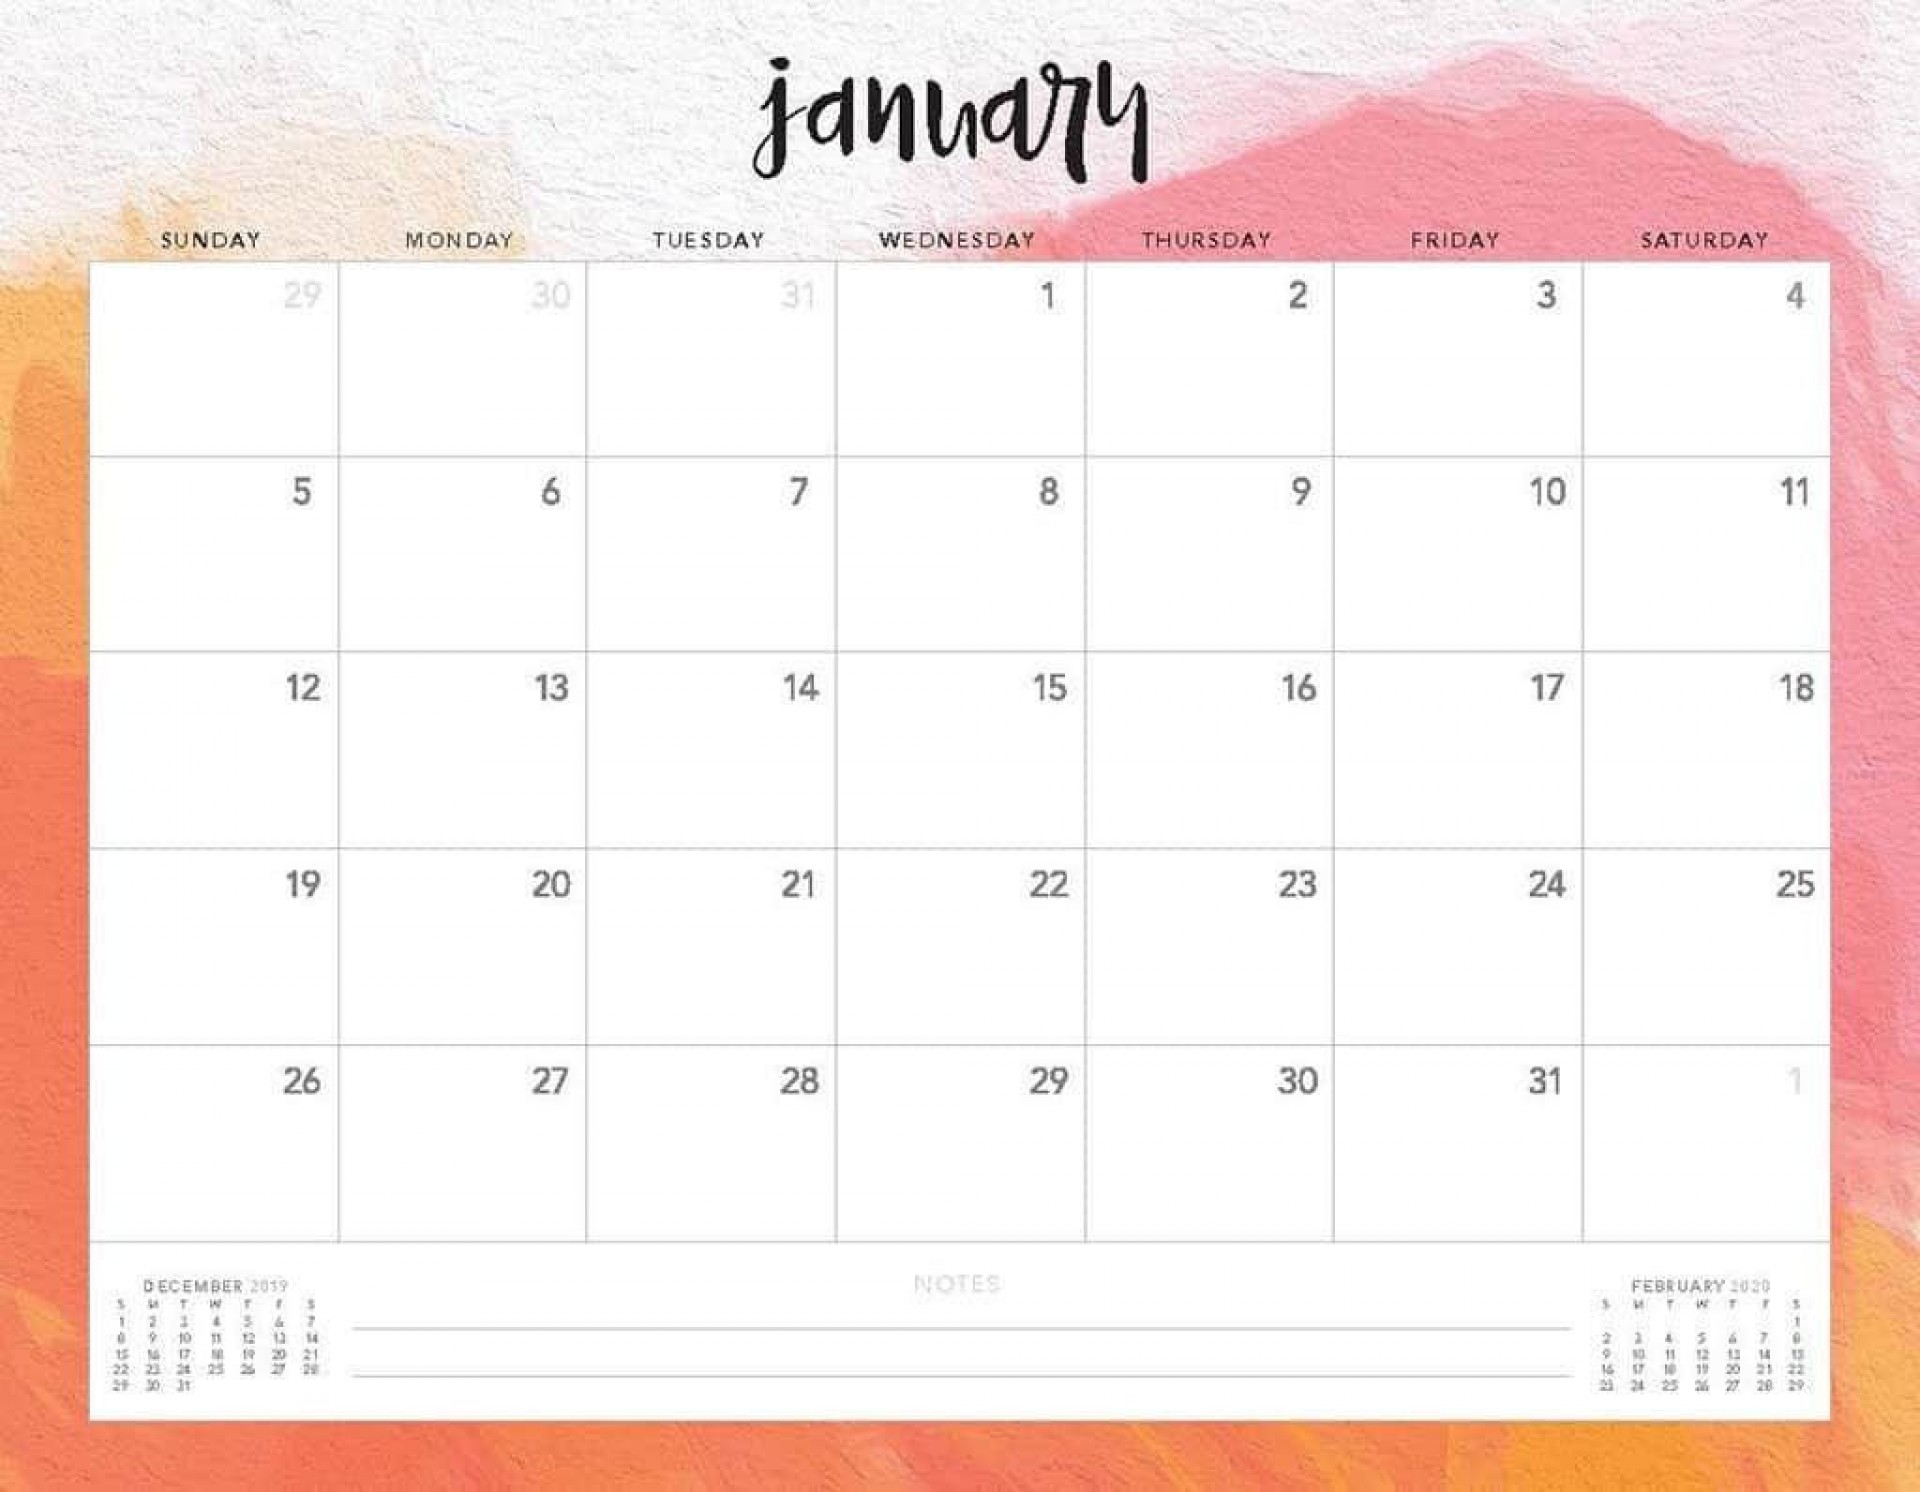 009 Marvelou 2020 Monthly Calendar Template Picture  Templates Word Australian Free1920